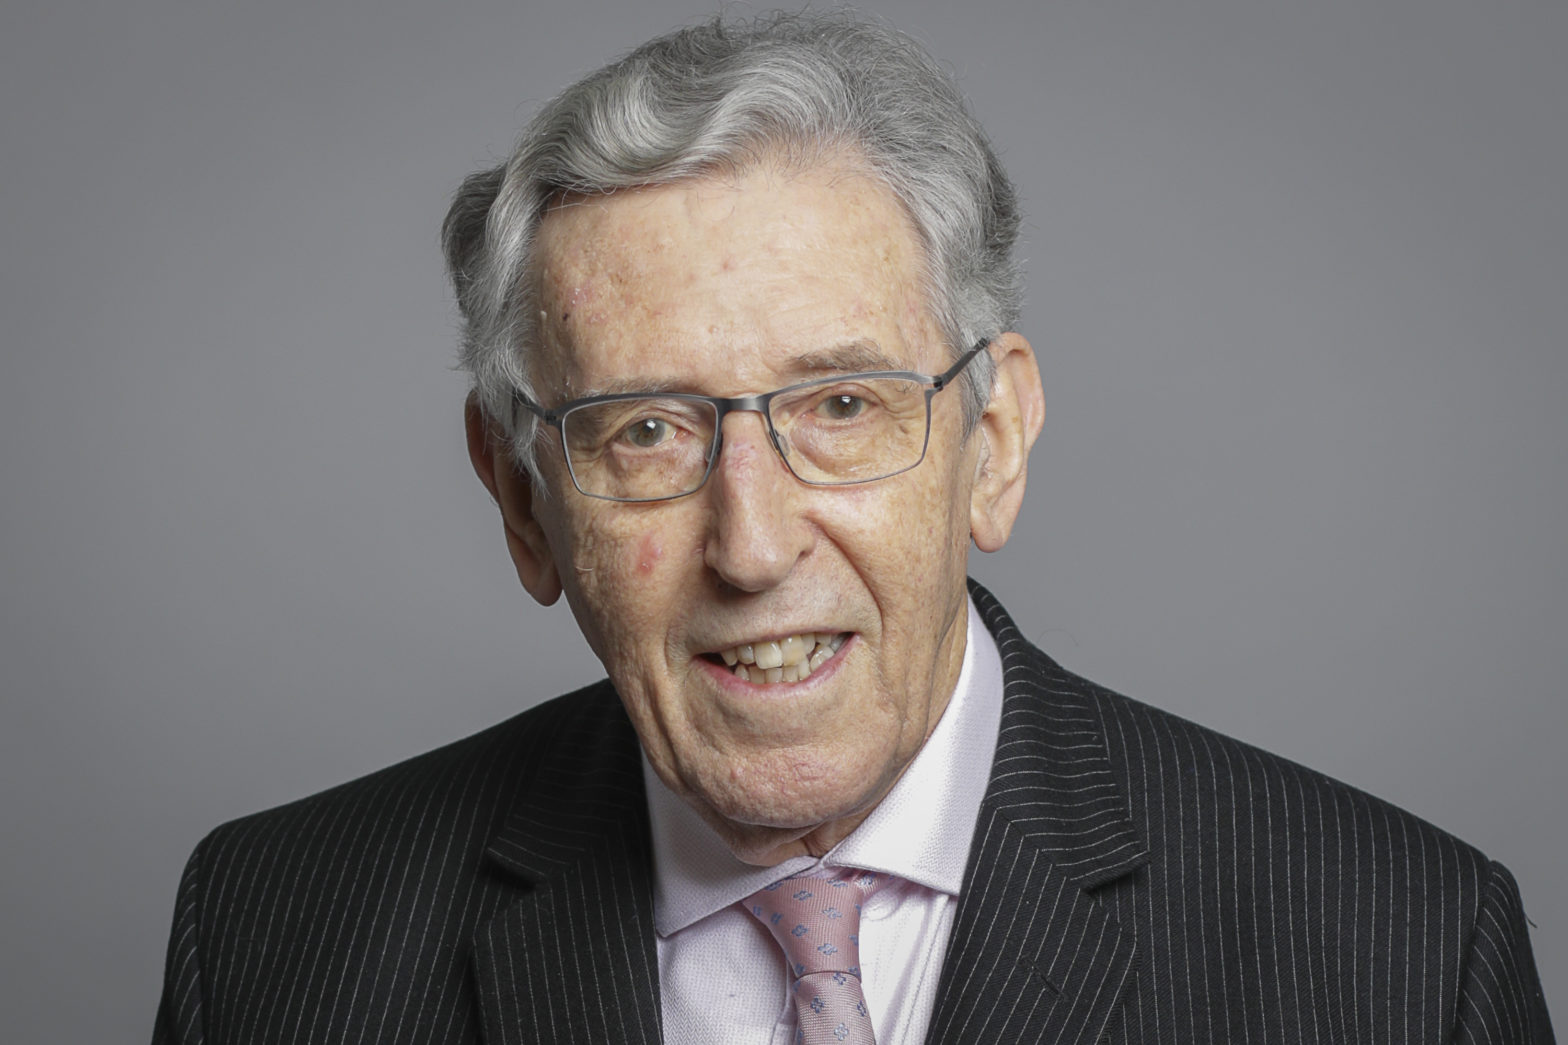 The Commonwealth Meets Tomorrow – Article by Lord Howell